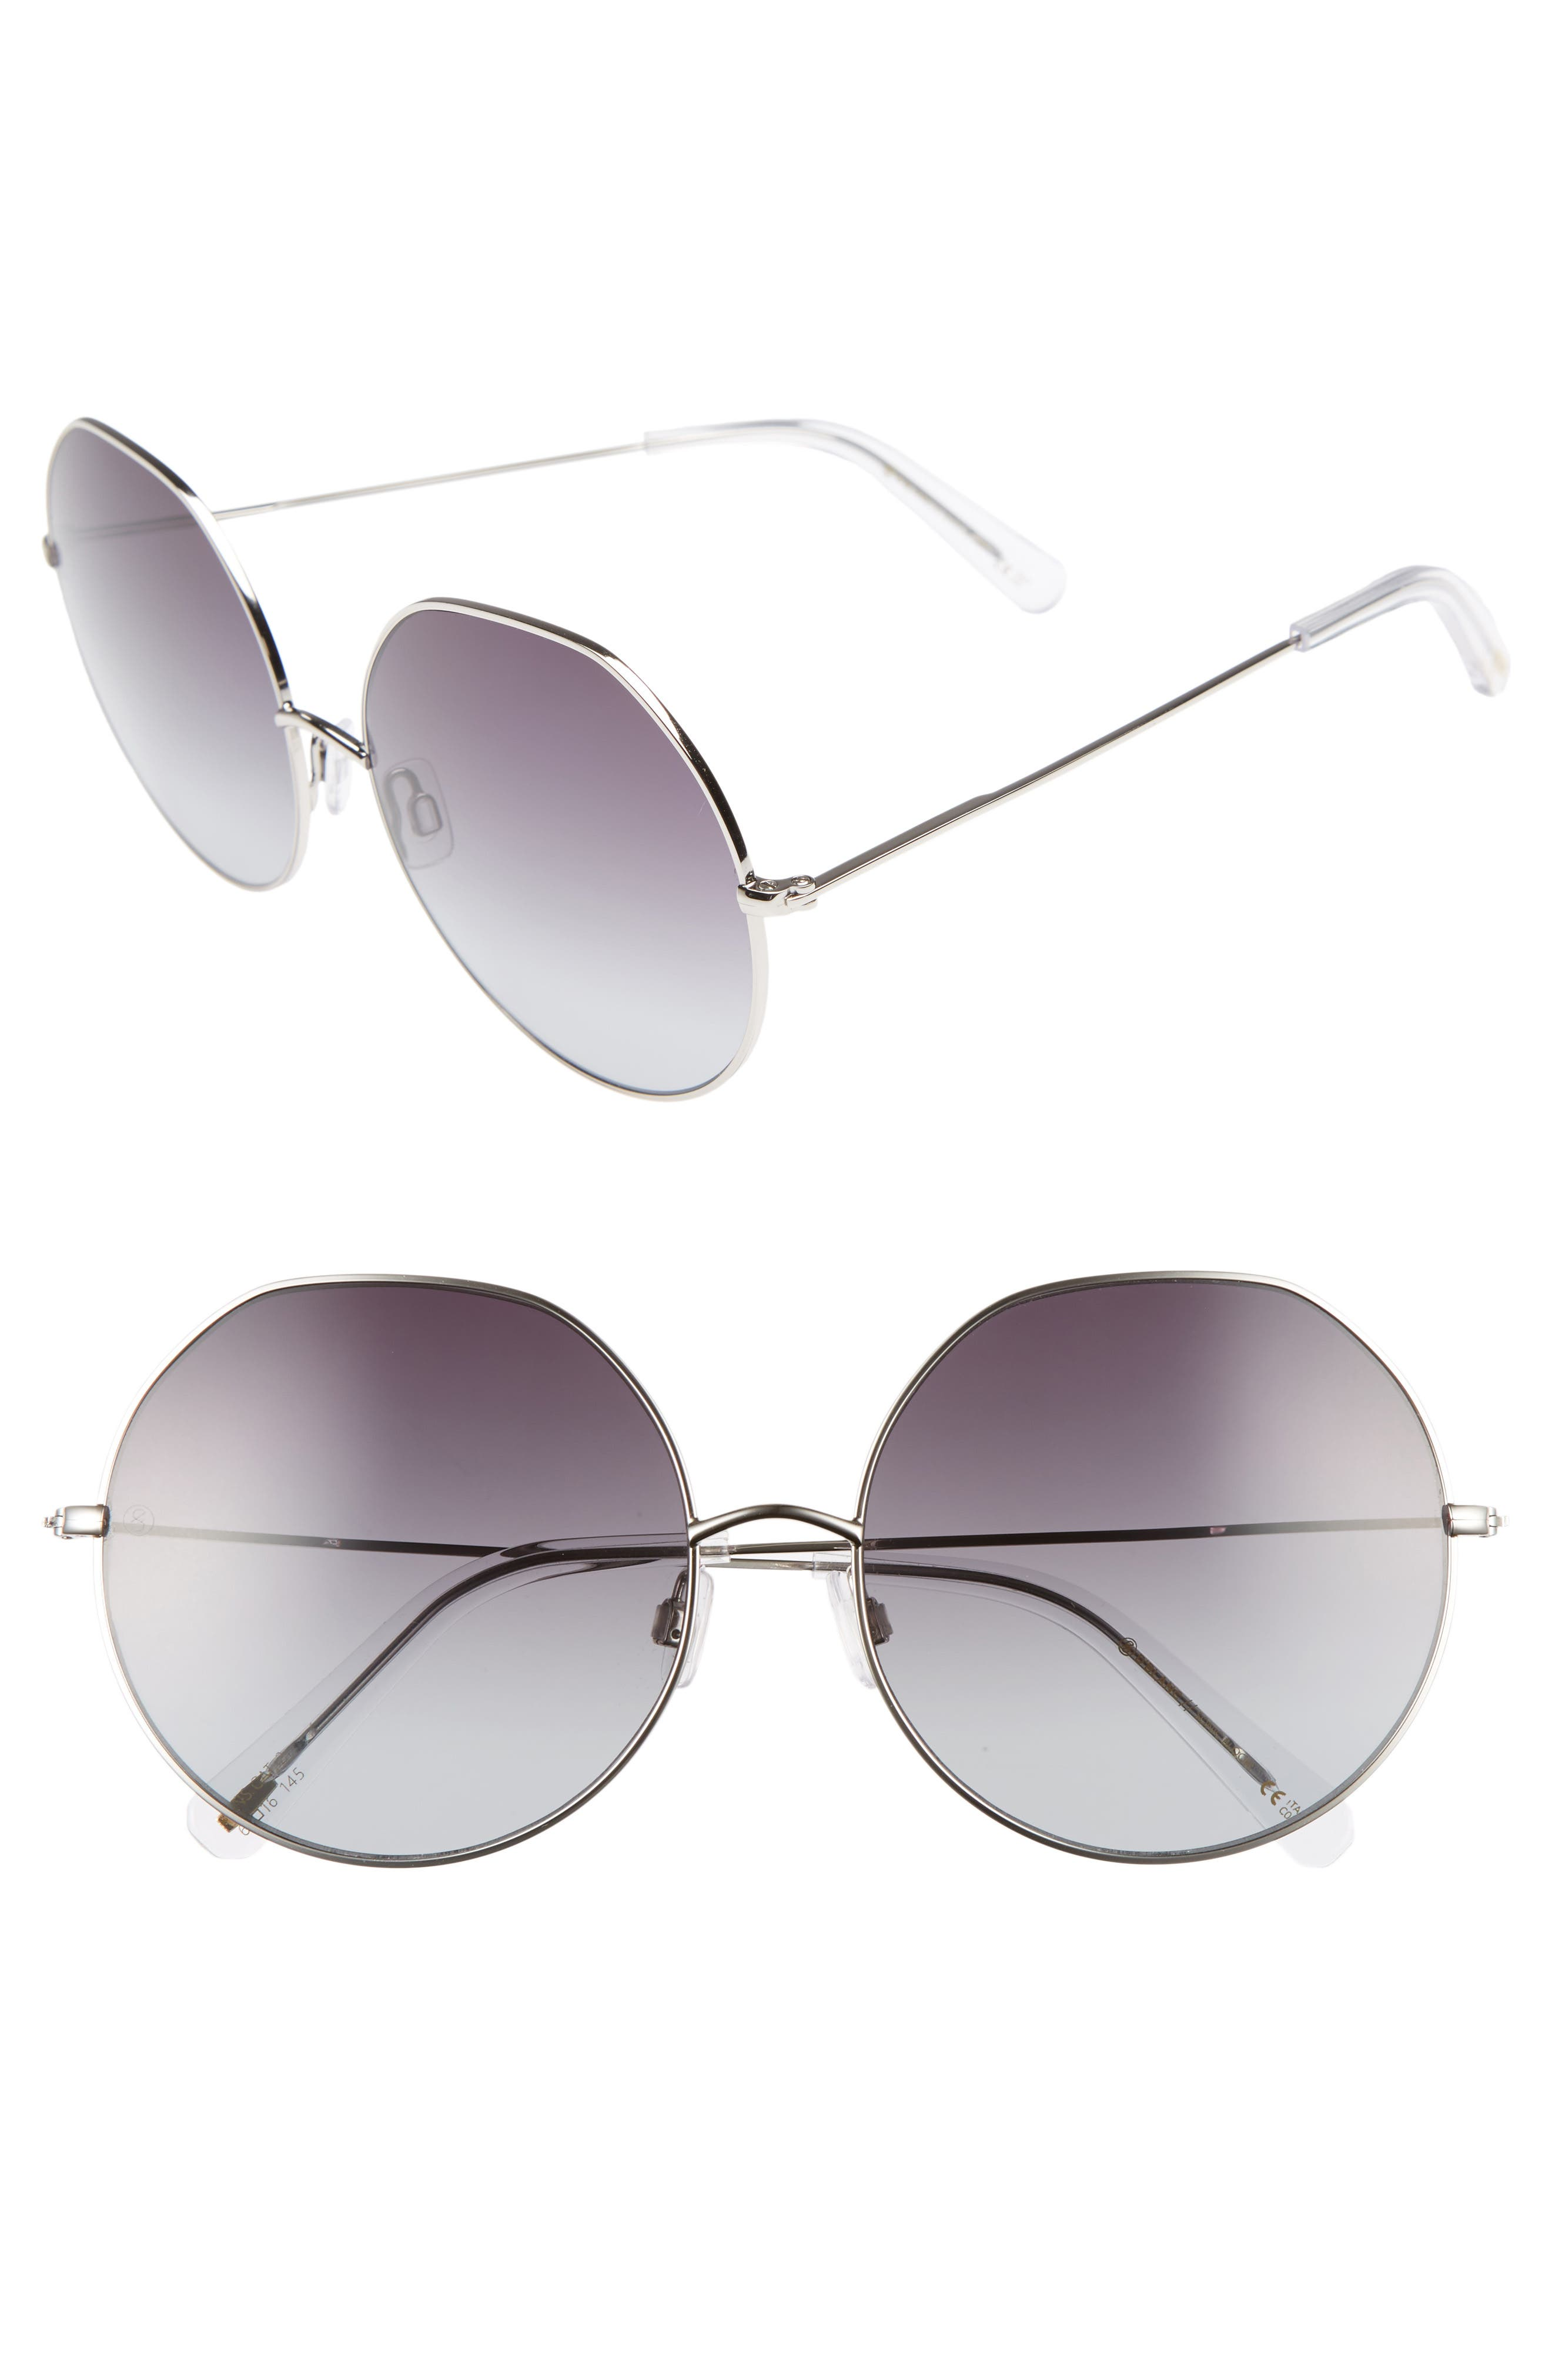 D'BLANC Sonic Boom 62mm Gradient Round Sunglasses,                             Main thumbnail 1, color,                             040